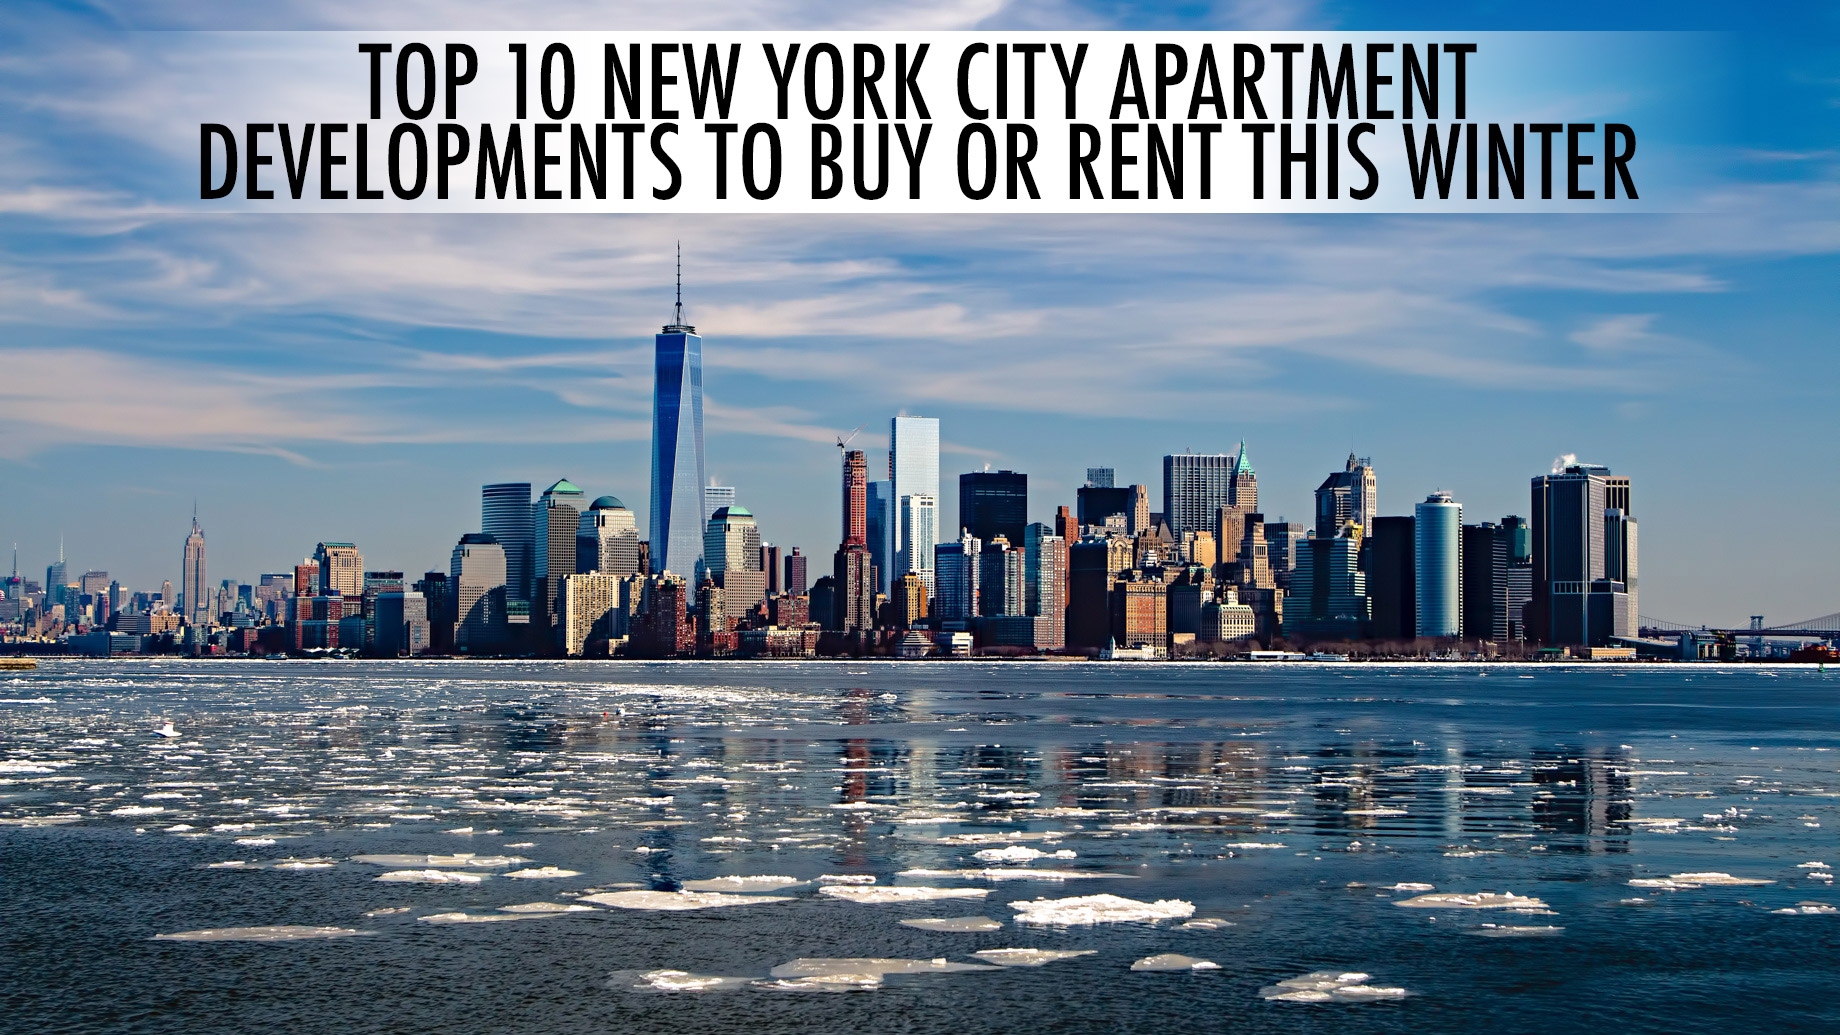 Luxury Real Estate - Top 10 New York City Apartment ...